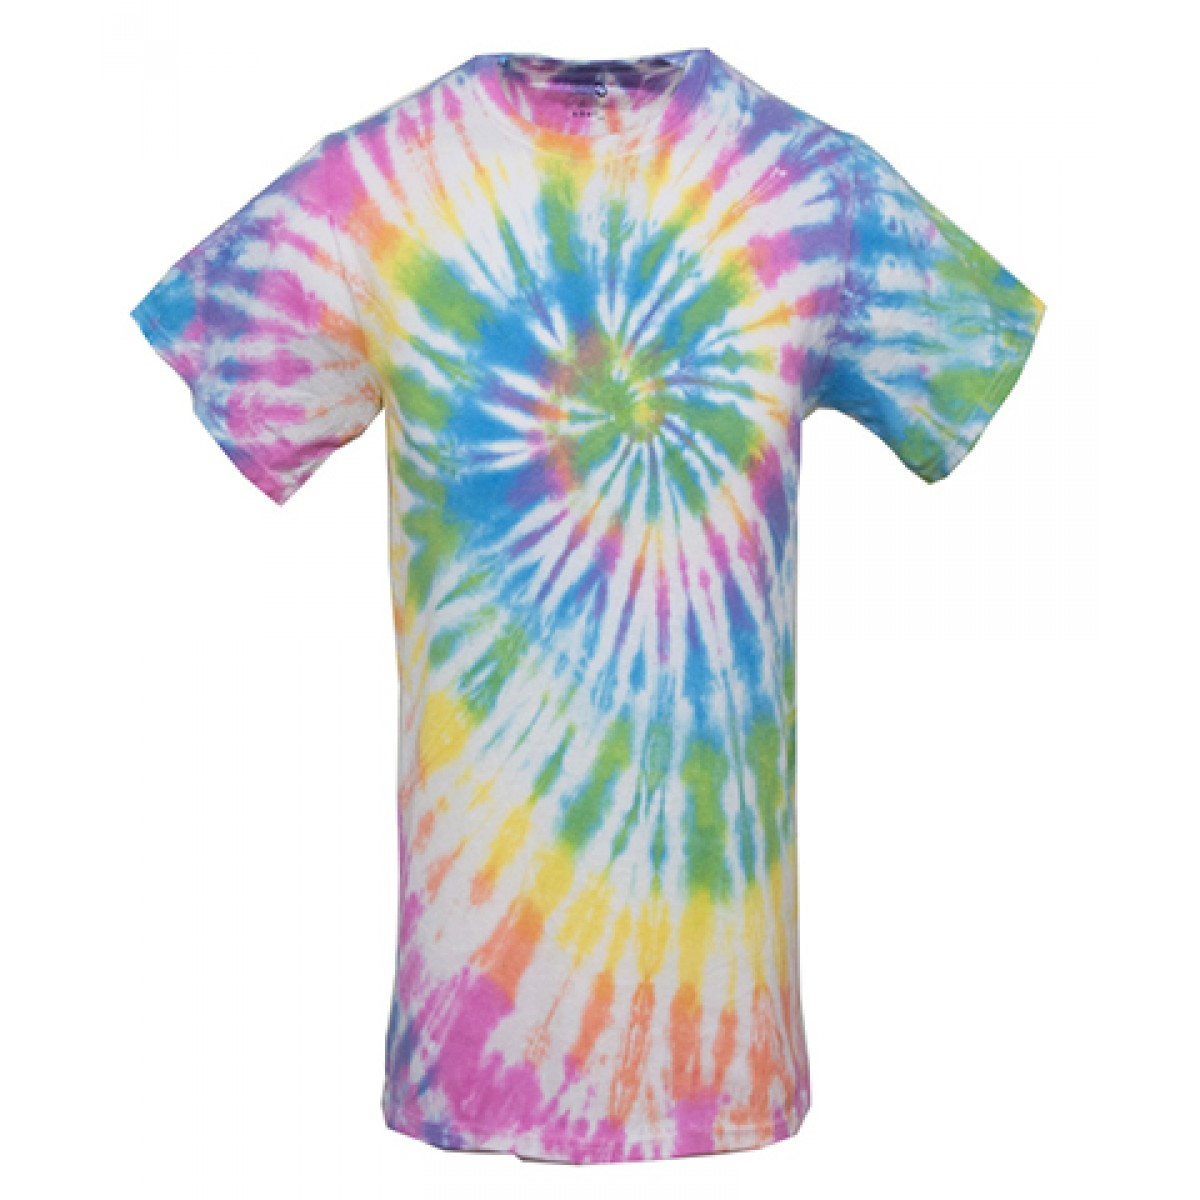 Tie-Dye Short Sleeve Shirts-Multi -YM